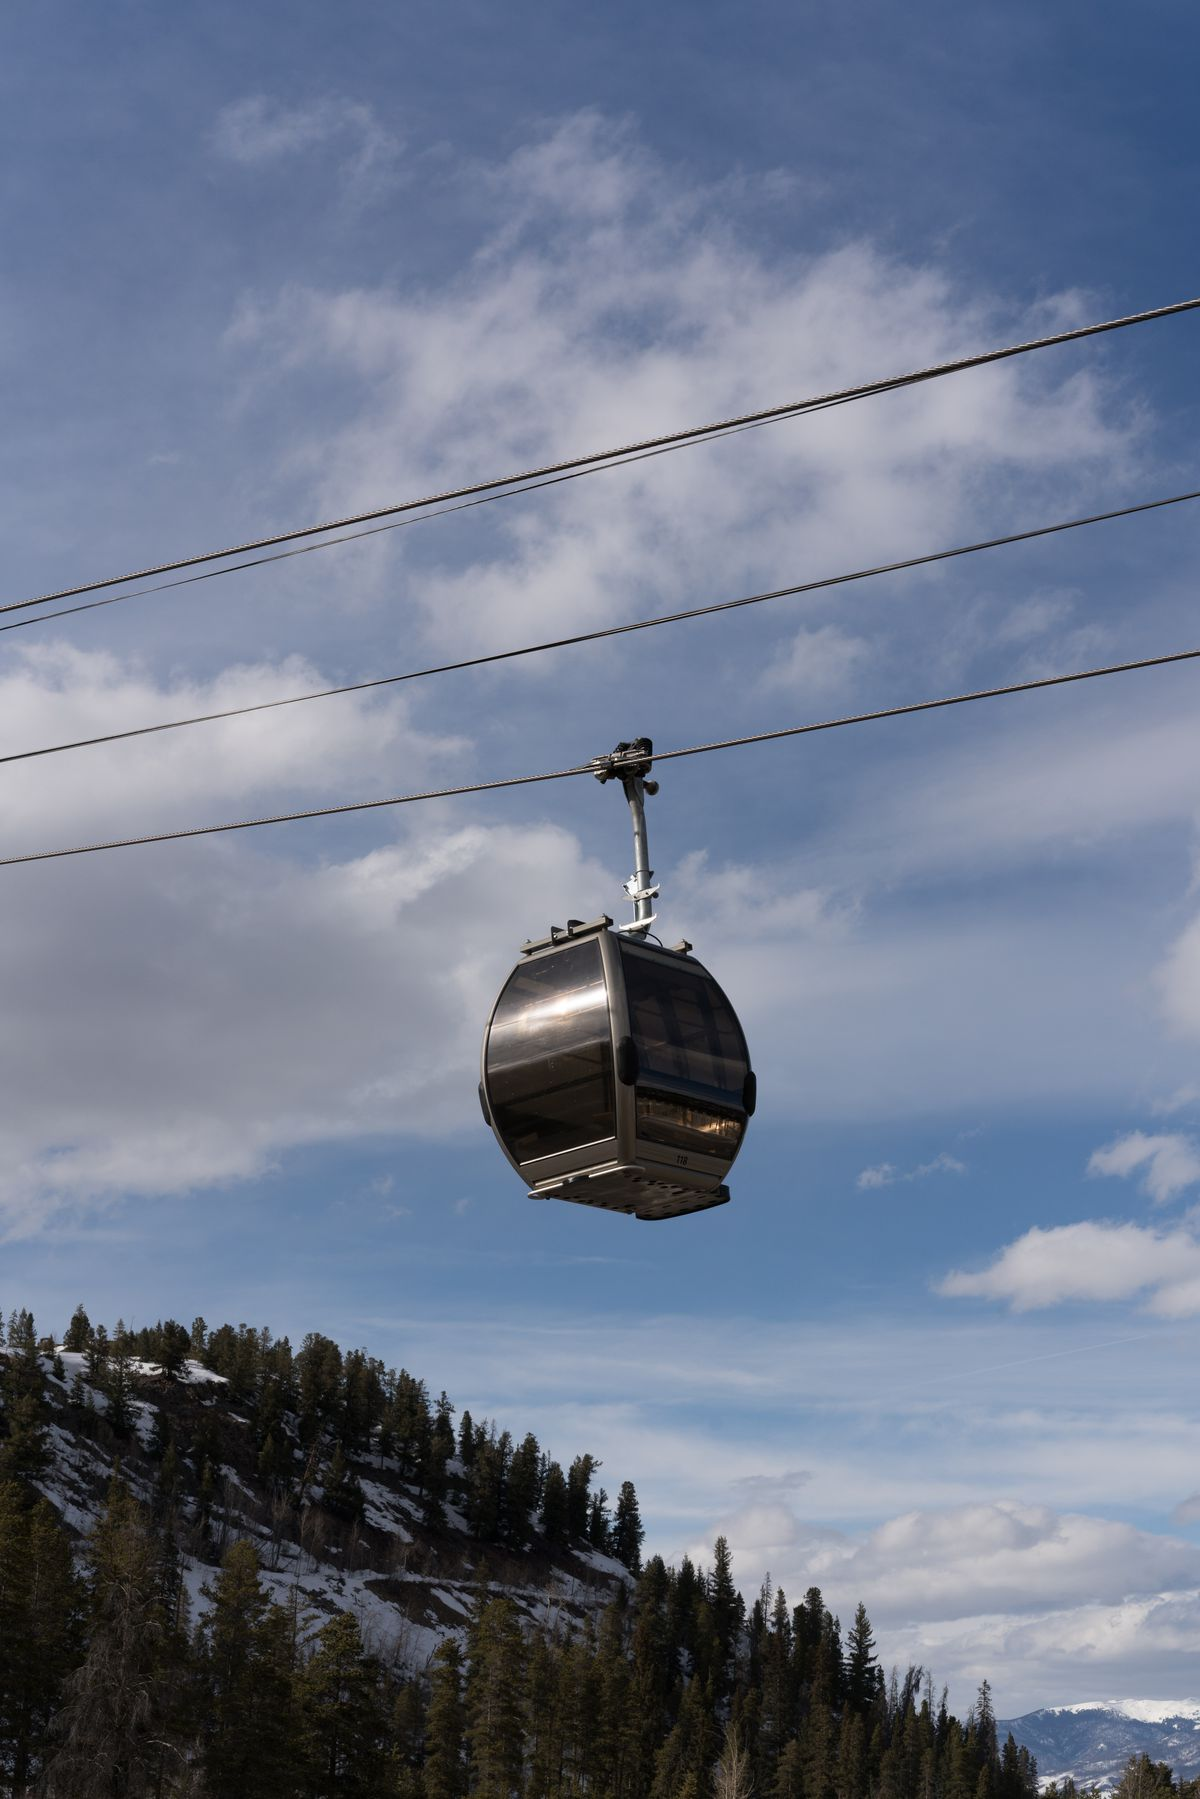 Gondola in Breckenridge with the mountains below.